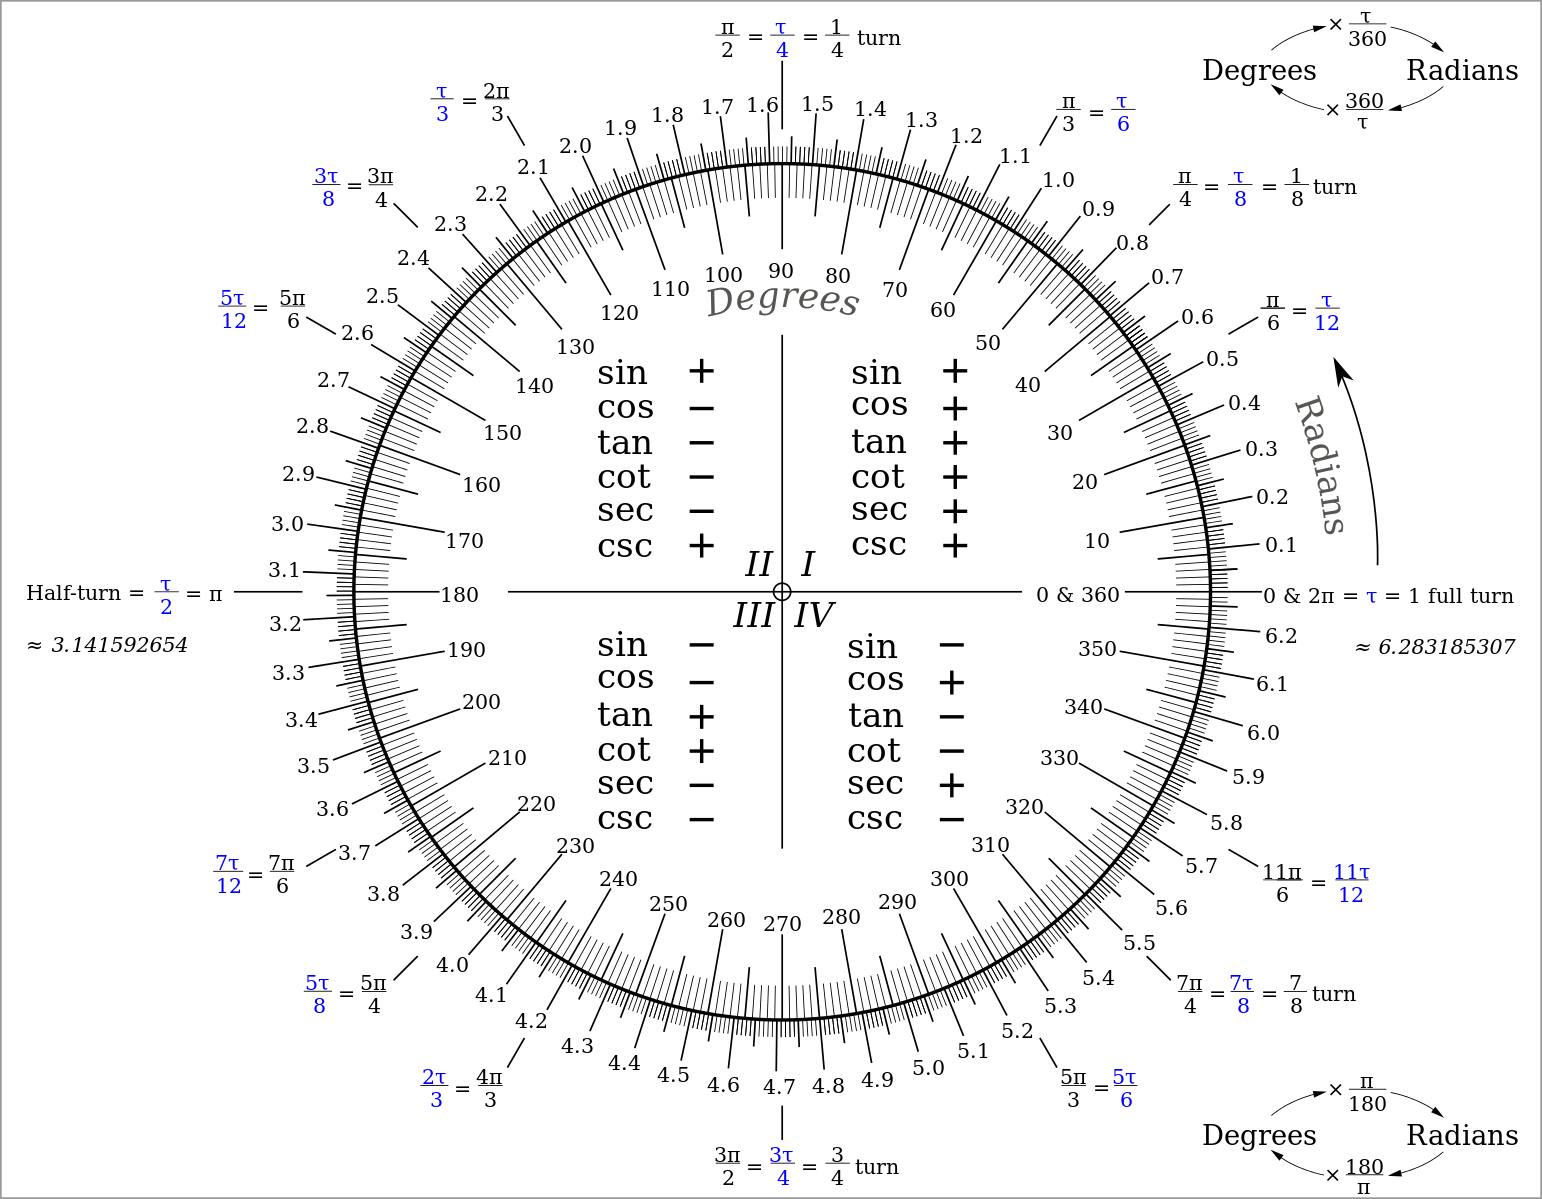 The circle constant scienceline nvjuhfo Images